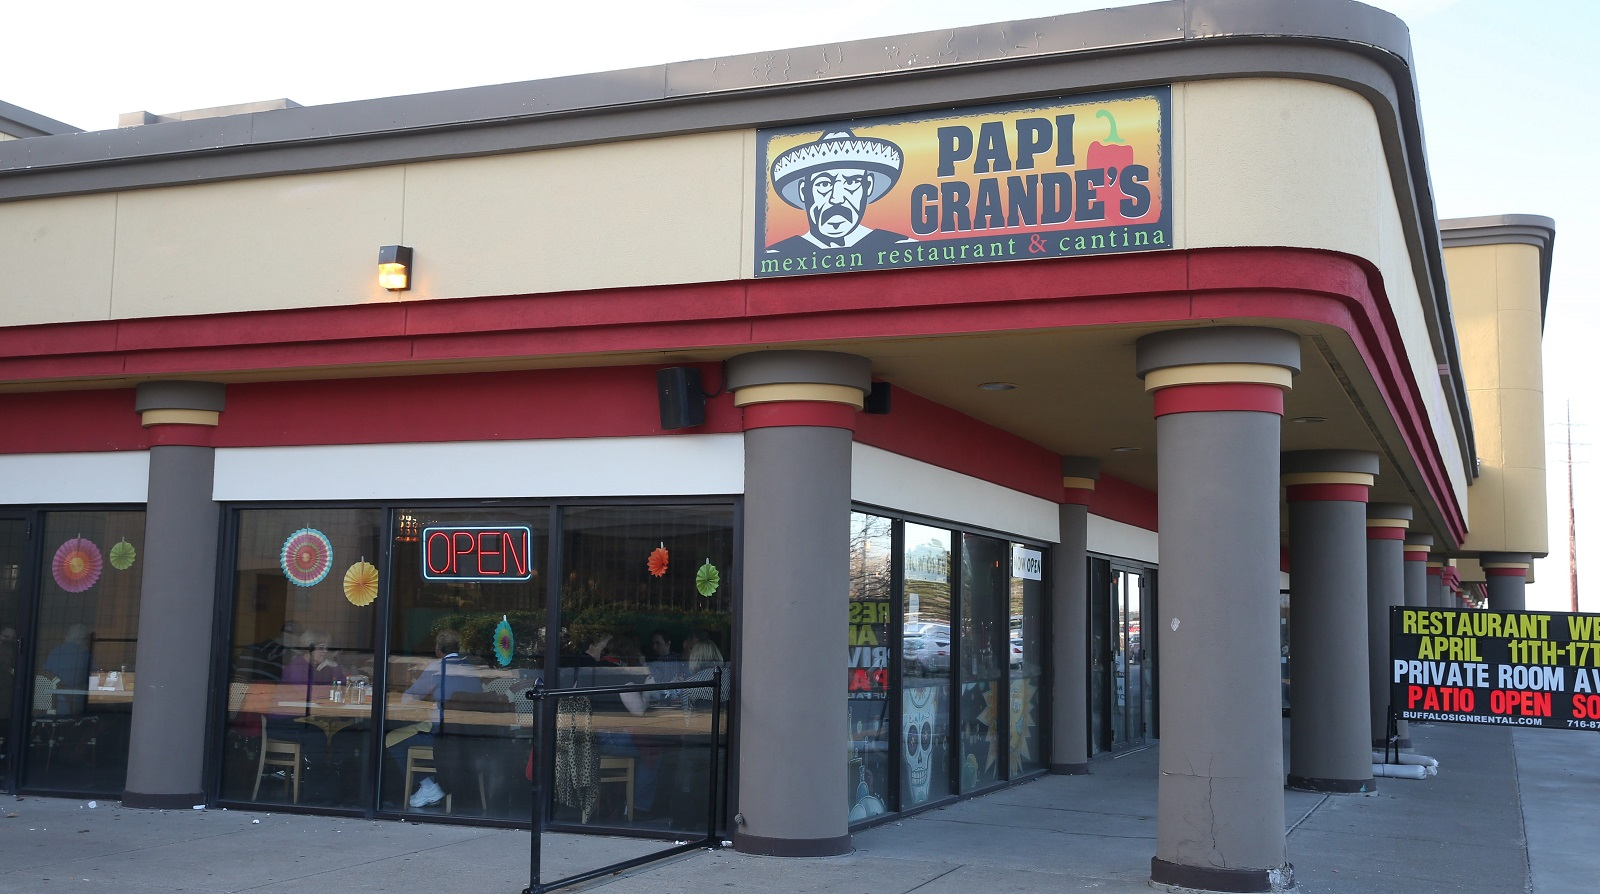 Papi Grande's Mexican Restaurant & Cantina opened recently at 4276 Maple Road in Amherst next to the AMC Maple Ridge 8 theater. (Sharon Cantillon/Buffalo News)